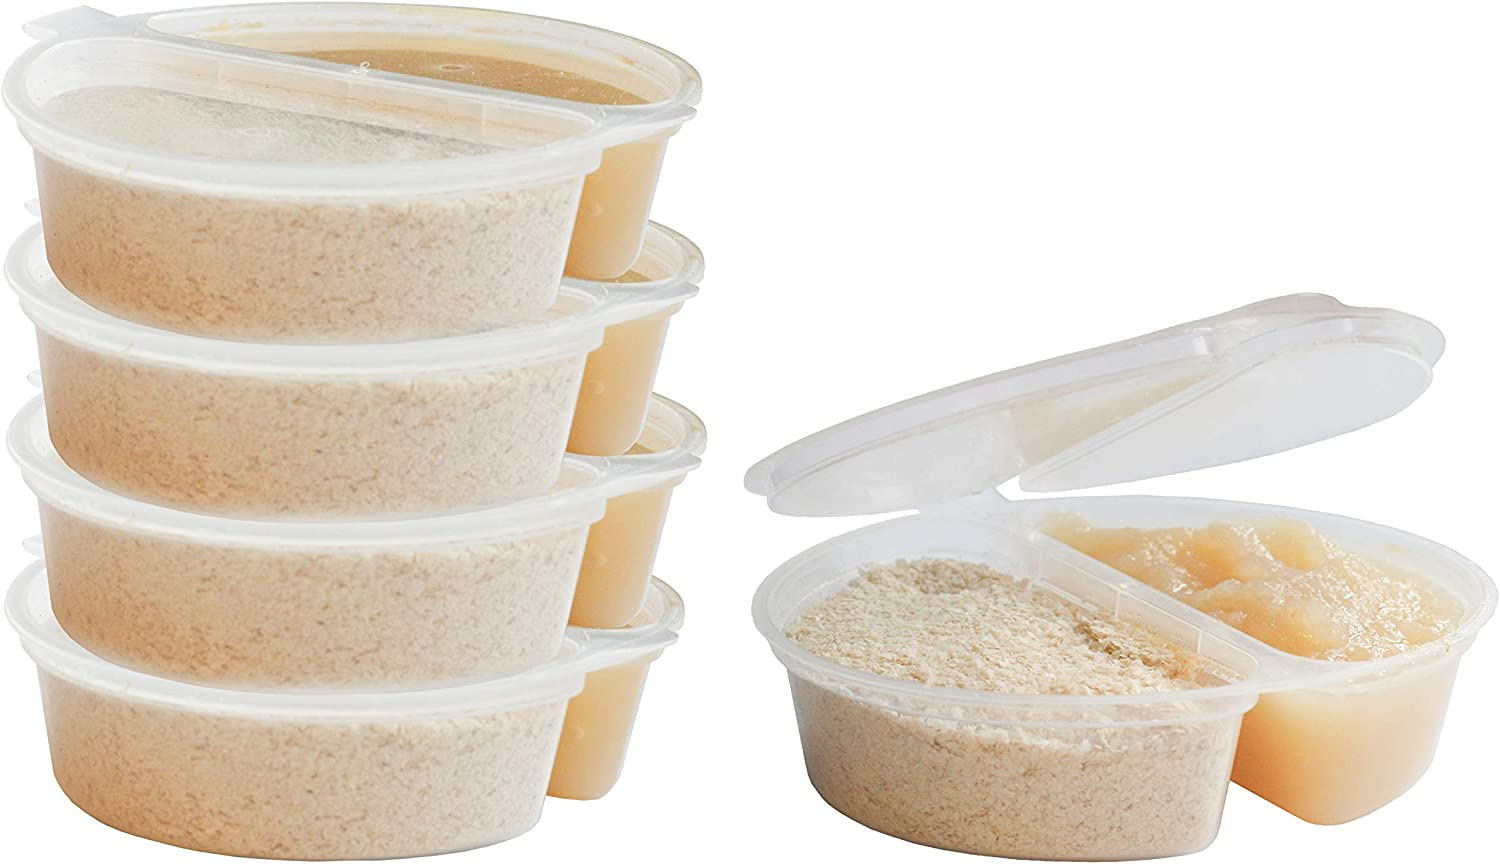 2-Compartment BPA-Free Disposable Food and Snack Freezer Storage Containers with Hinged Lids (3.5 oz 50 Pack)   Travel Snack Cups   Store Homemade, Organic Purees   Freezer Dishwasher Safe